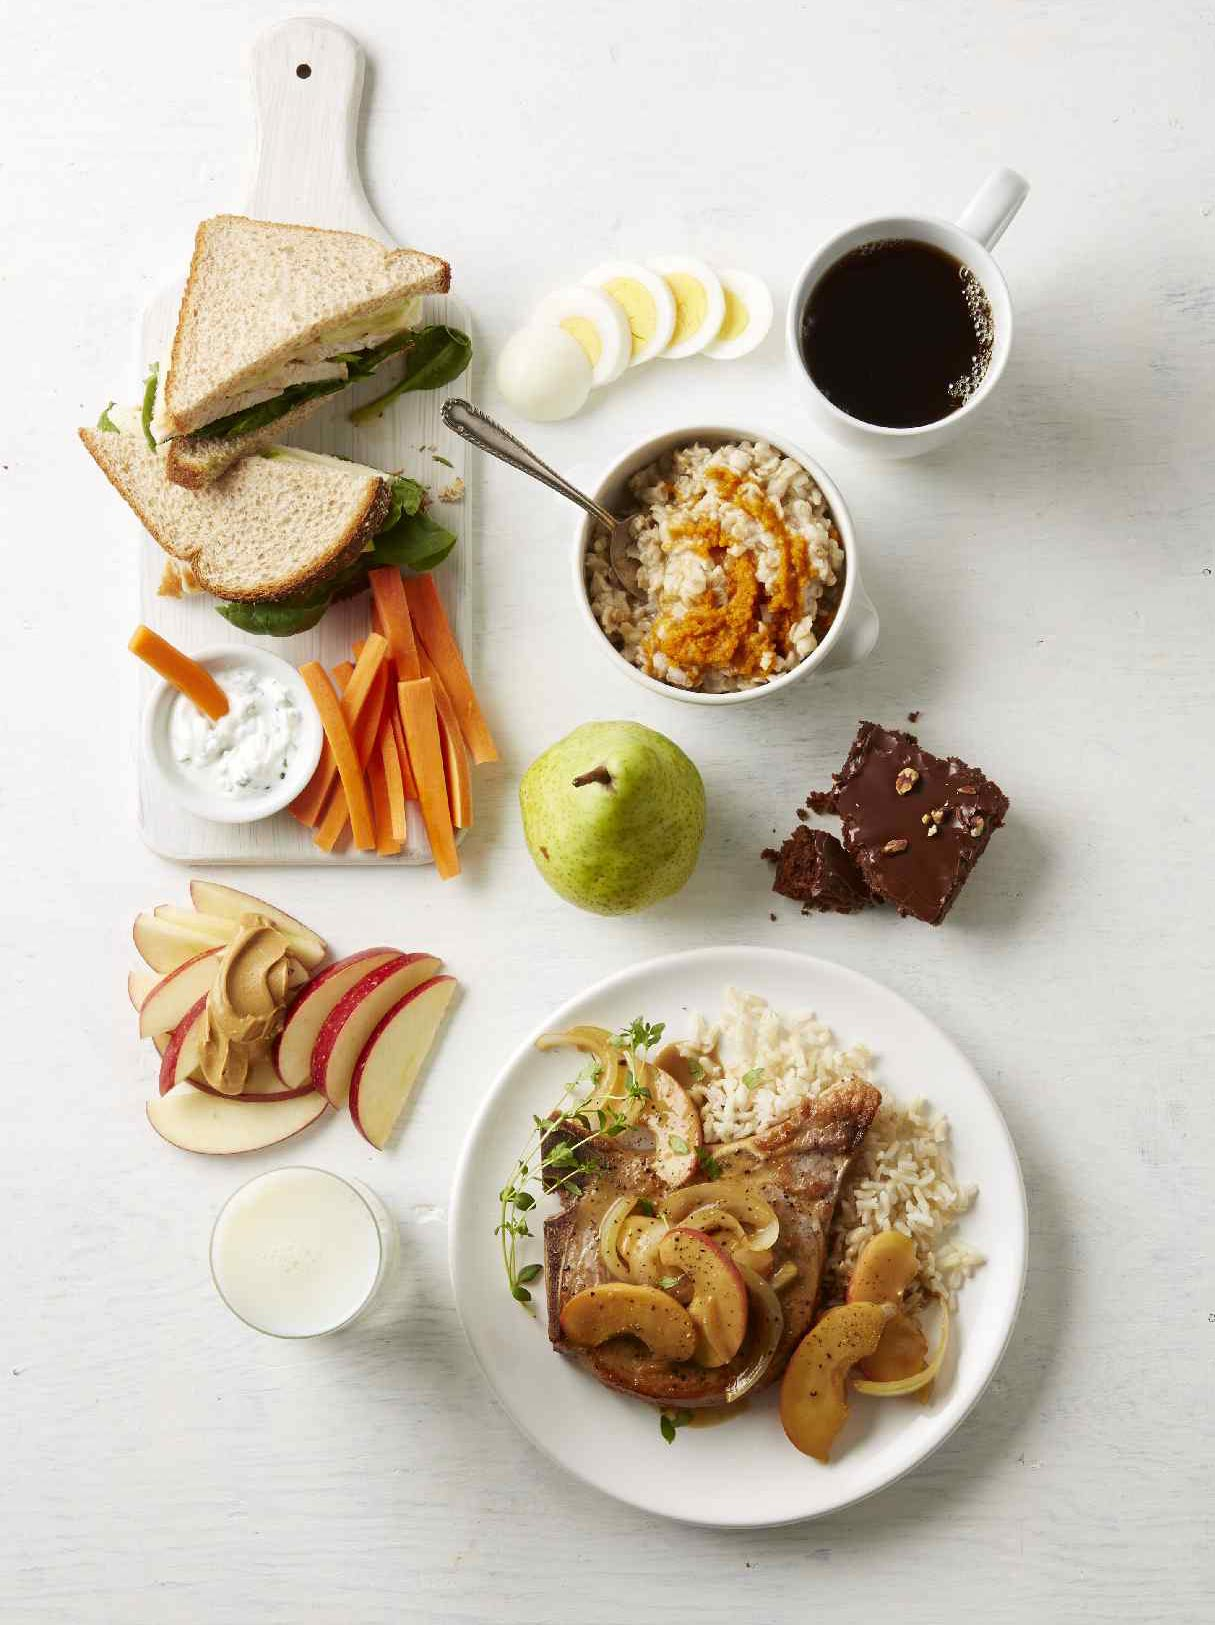 1-Day High-Protein Meal Plan for Diabetes